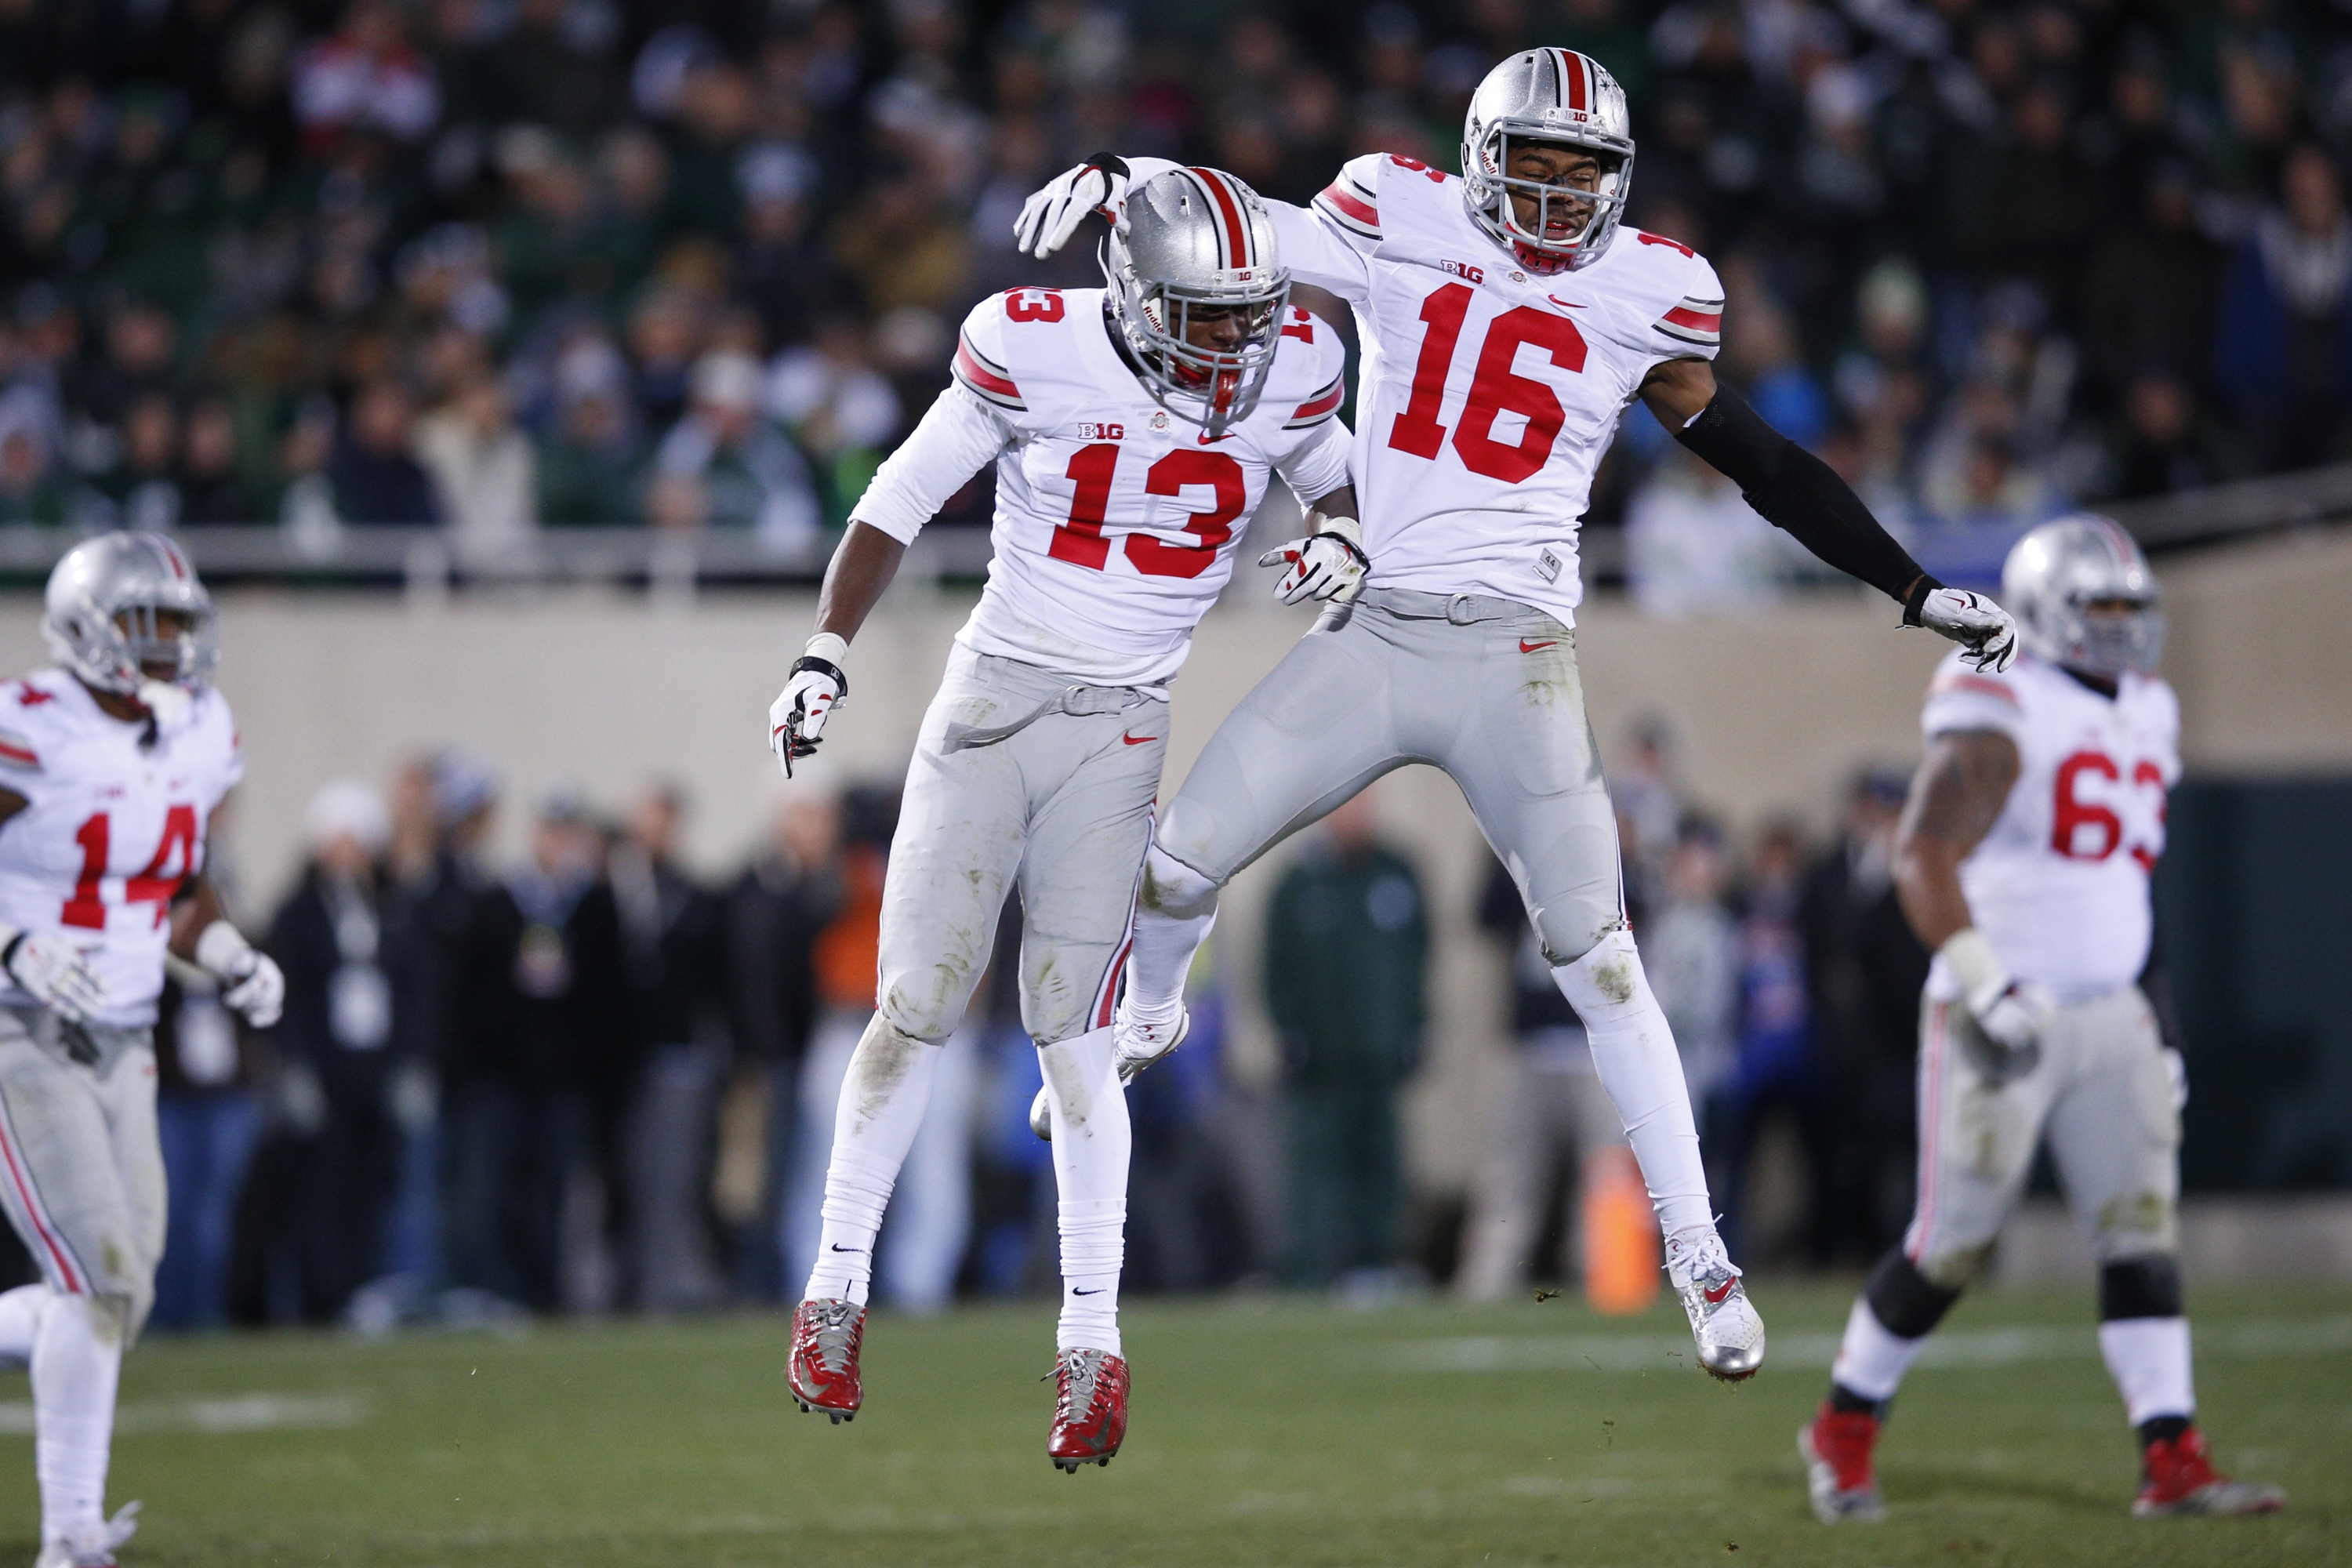 EAST LANSING, MI - NOVEMBER 8: Cam Burrows #16 and Eli Apple #13 of the Ohio State Buckeyes celebrate a defensive stop in the second half of the game against the Michigan State Spartans at Spartan Stadium on November 8, 2014 in East Lansing, Michigan. (Photo by Joe Robbins/Getty Images)